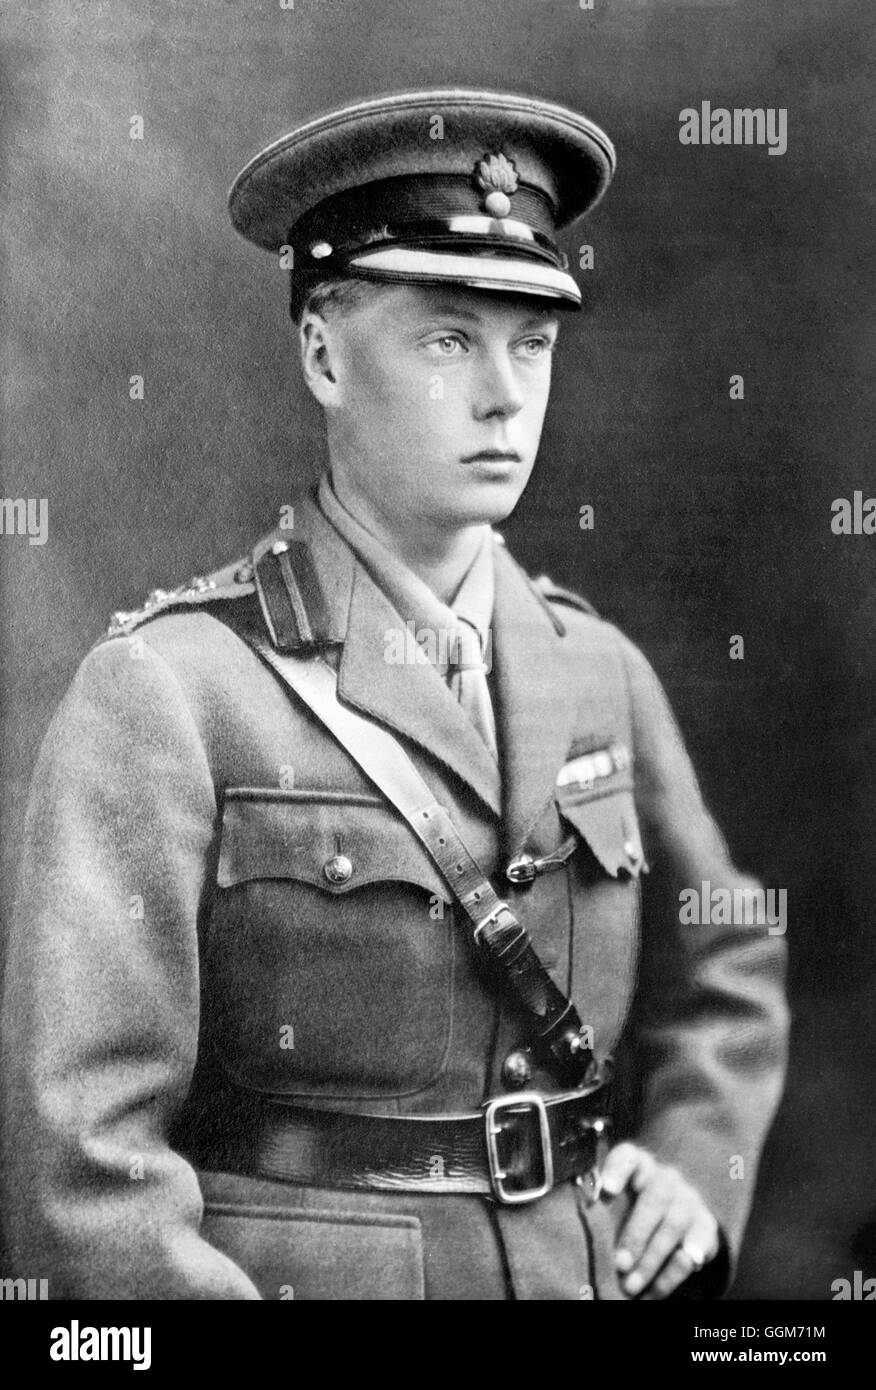 Edward VIII. Portrait of The Prince of Wales, future King Edward VIII and Duke of Windsor (1894-1972), in army uniform. - Stock Image